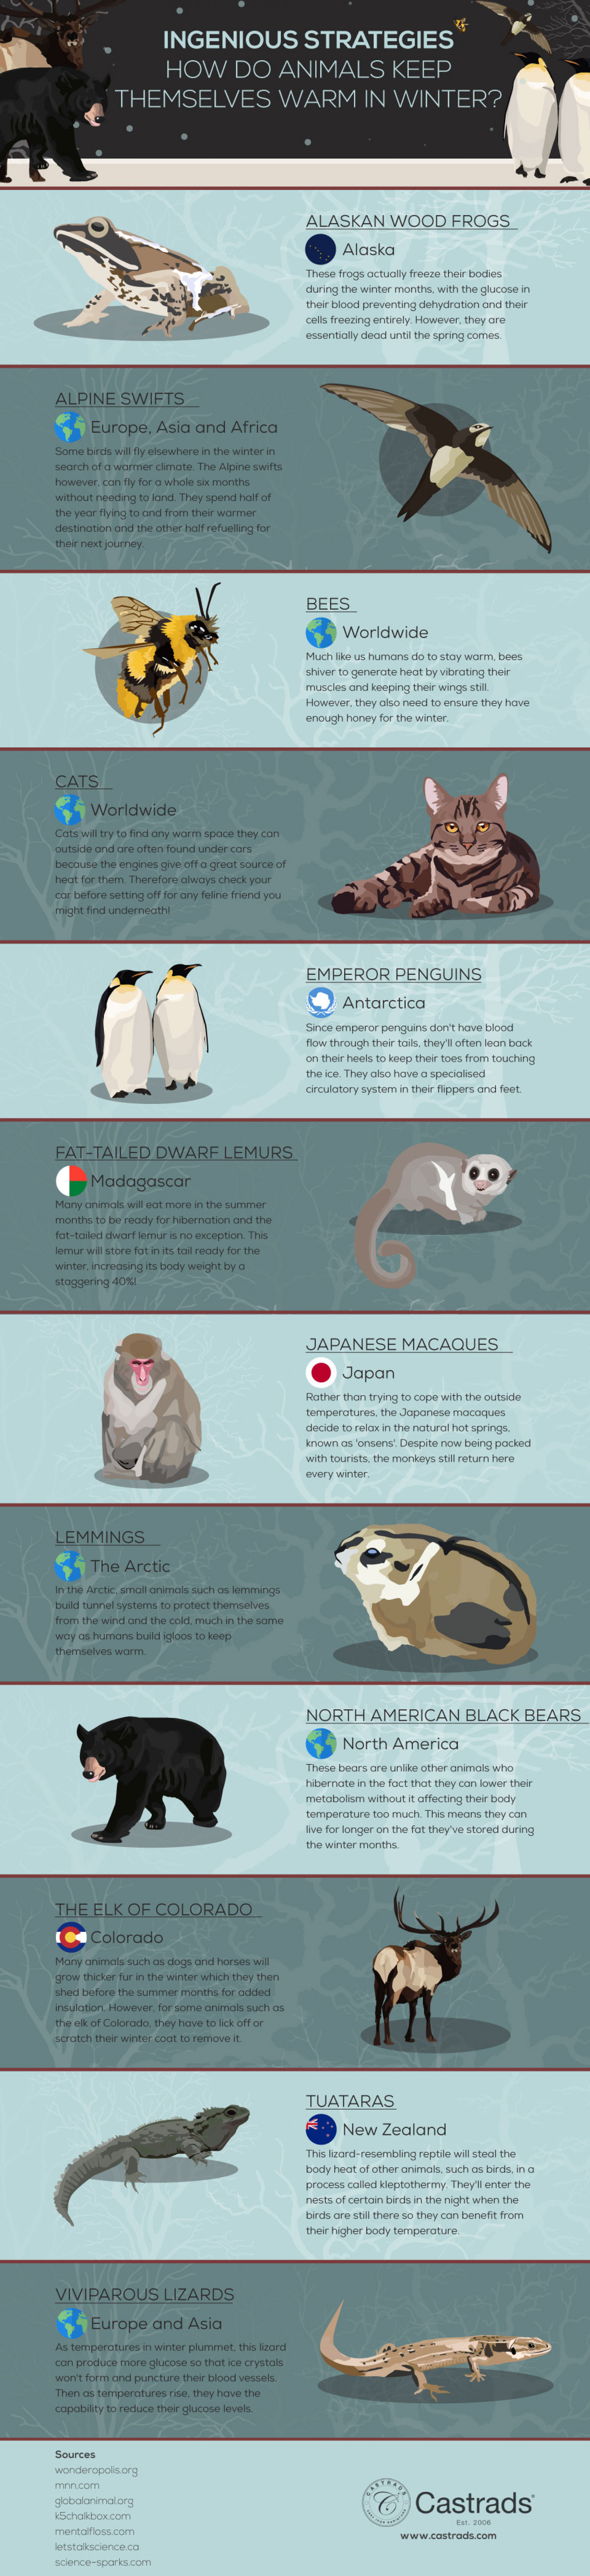 Ingenious Strategies: How Do Animals Keep Themselves Warm in Winter? Infographic